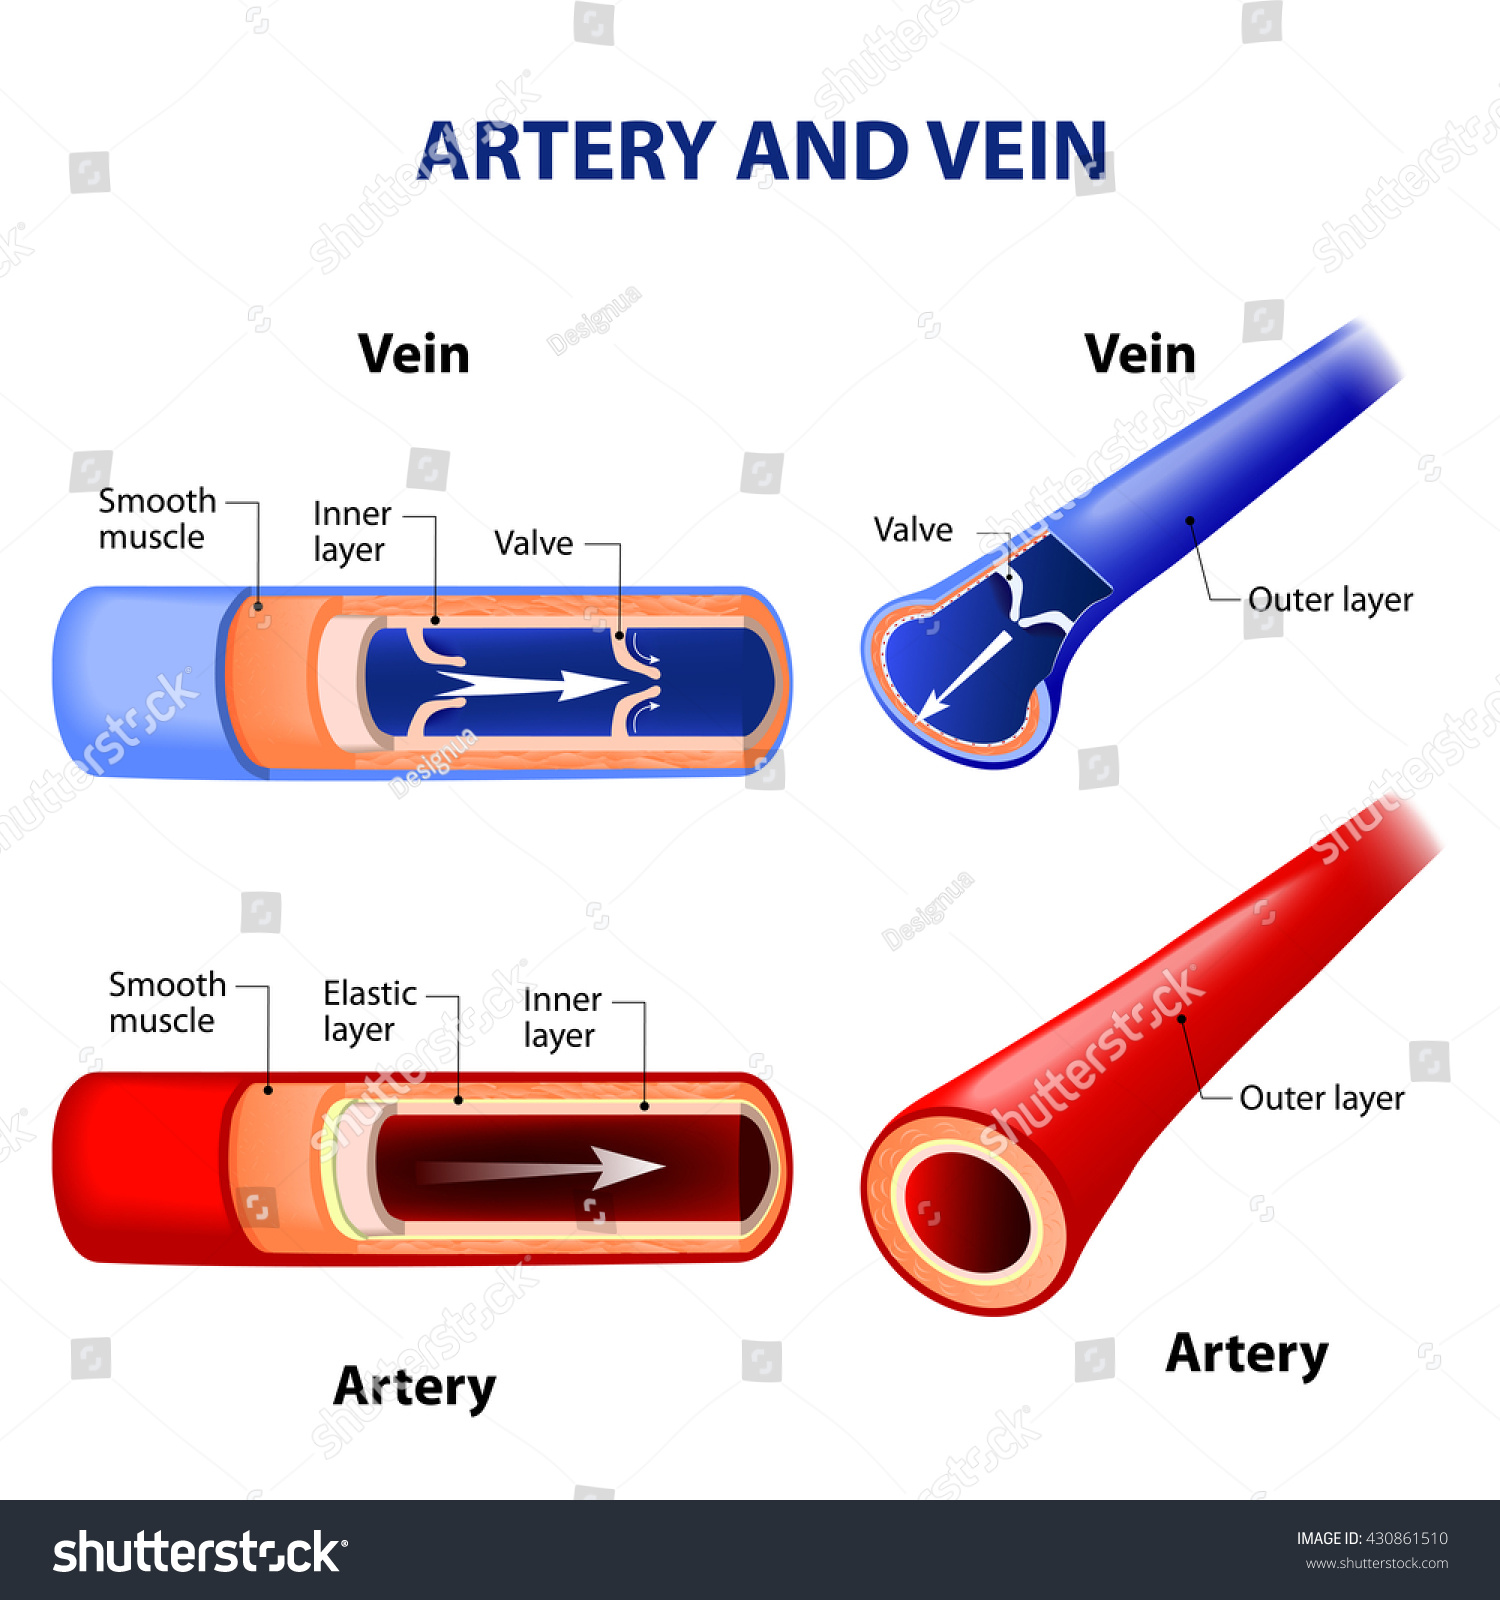 Royalty Free Stock Illustration Of Artery Vein Red Indicates